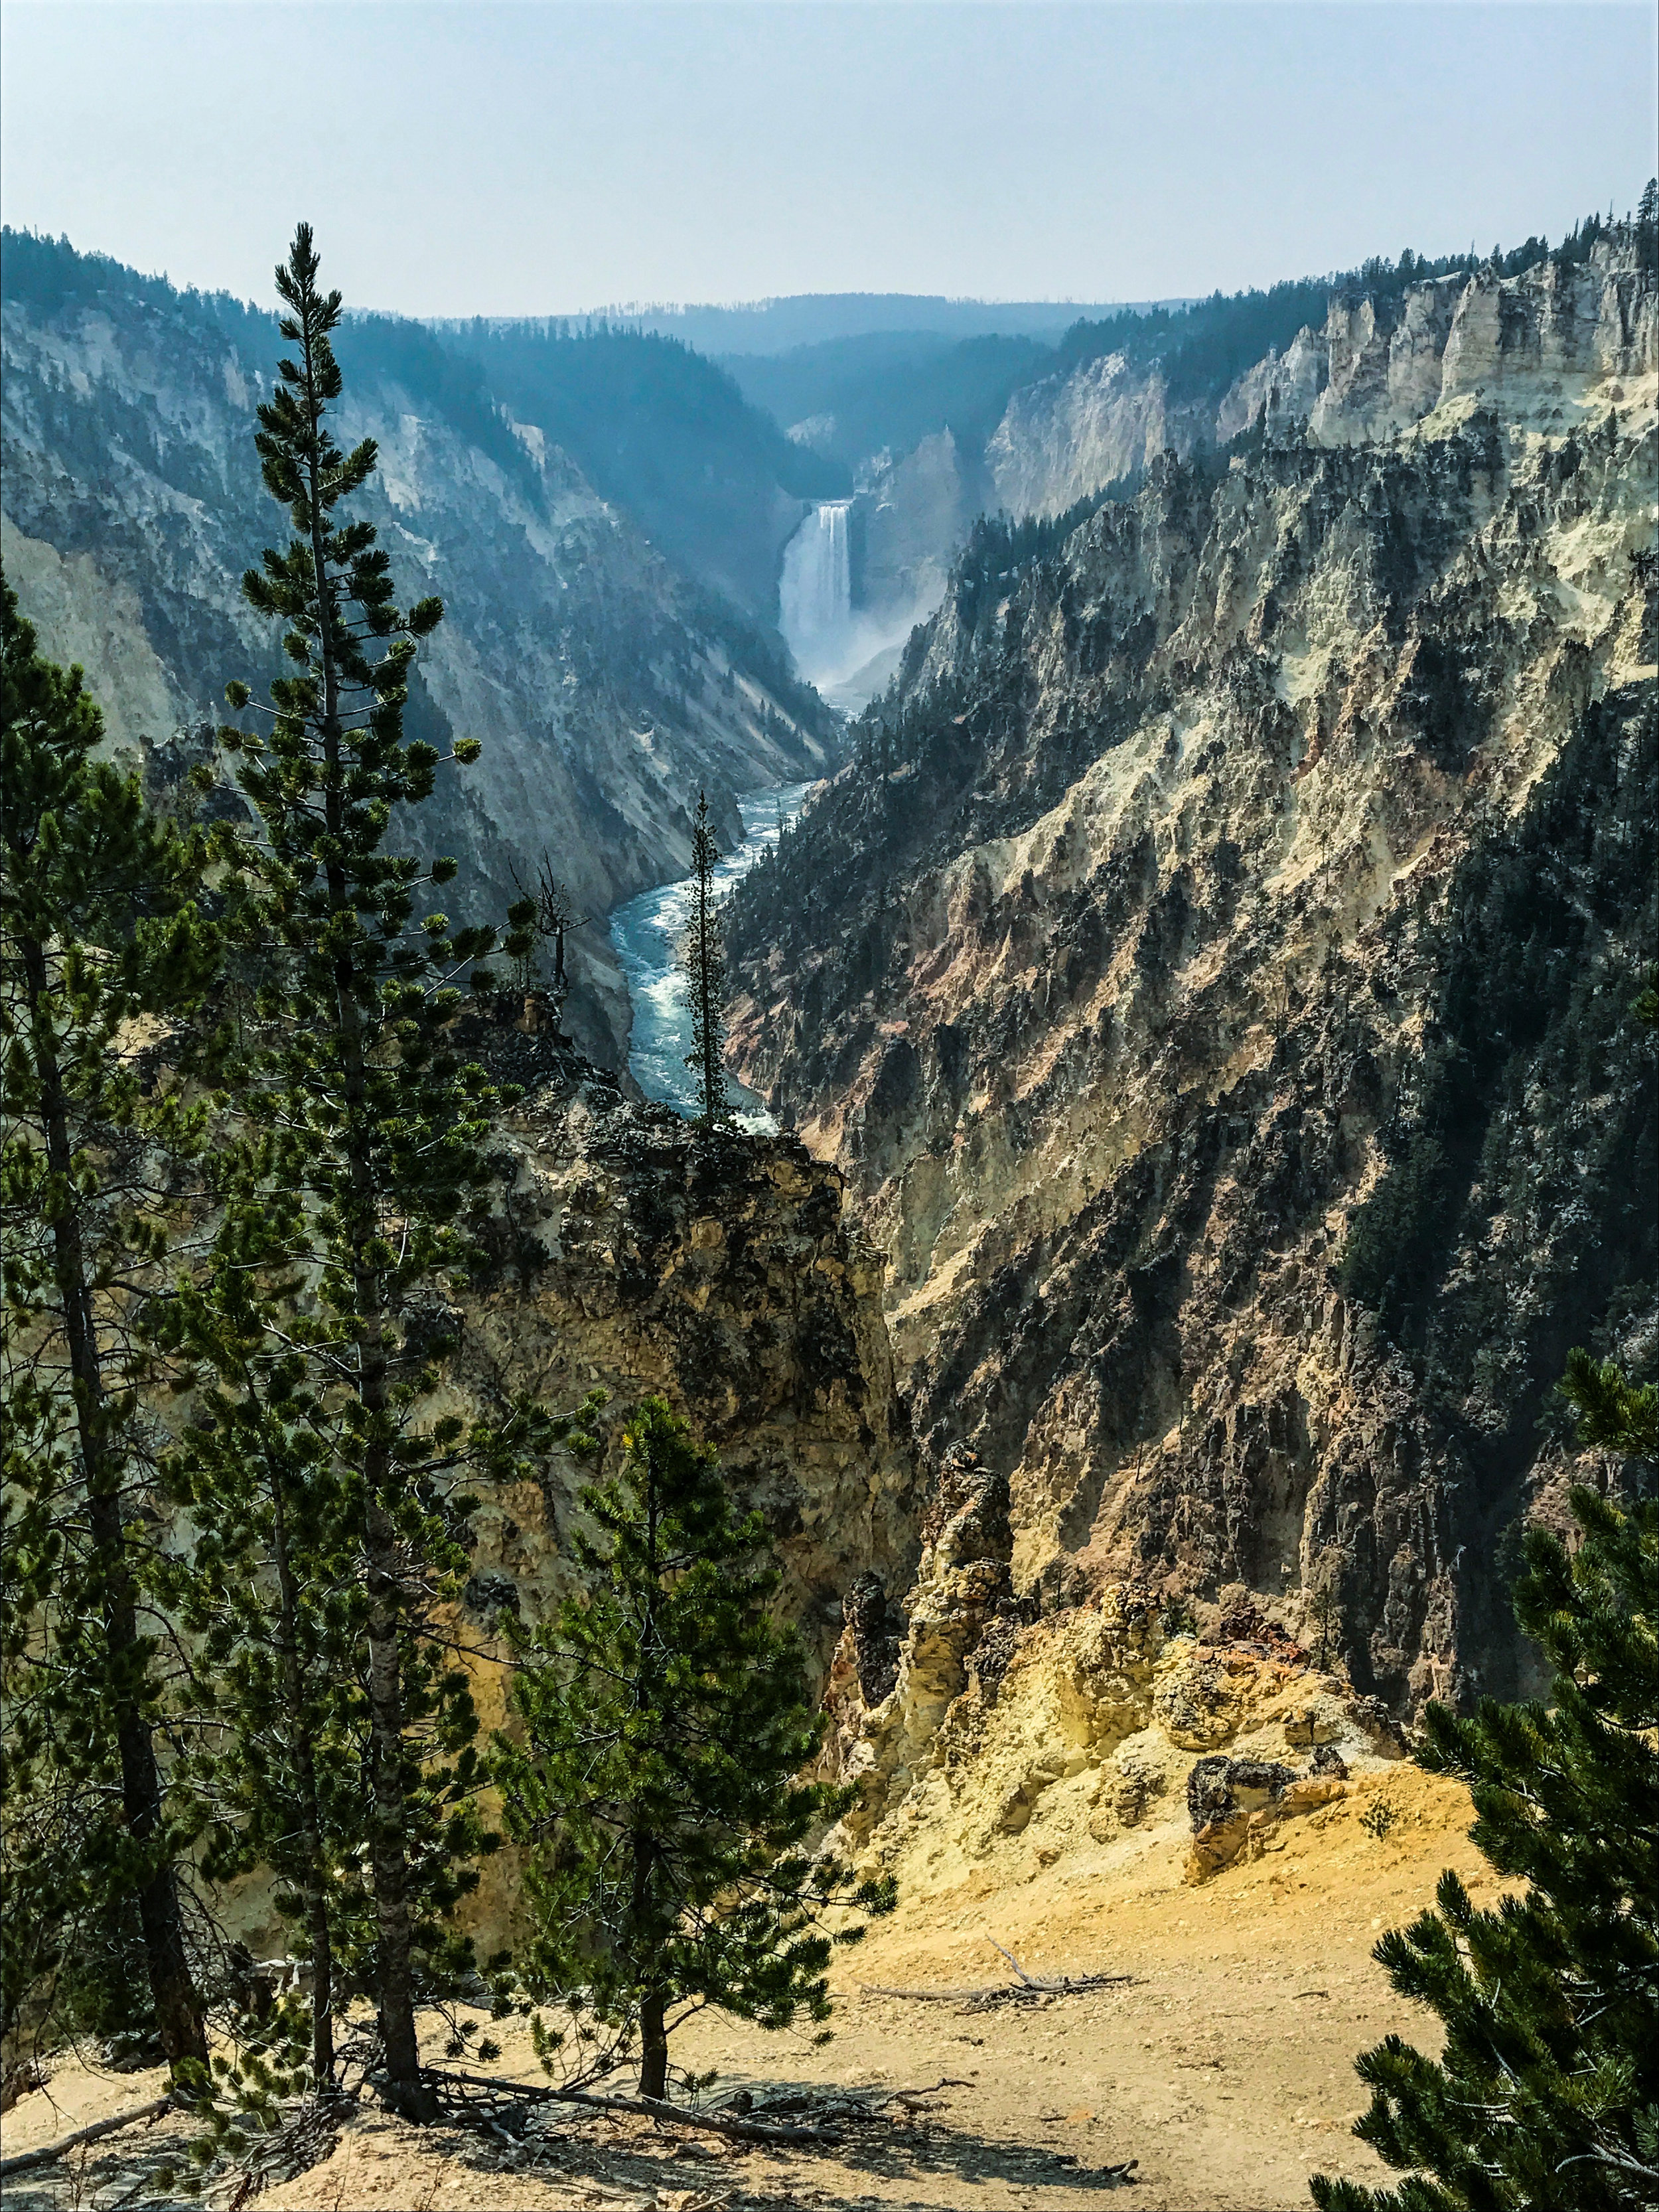 Yellowstone river flowing through the Grand Canyon of Yellowstone